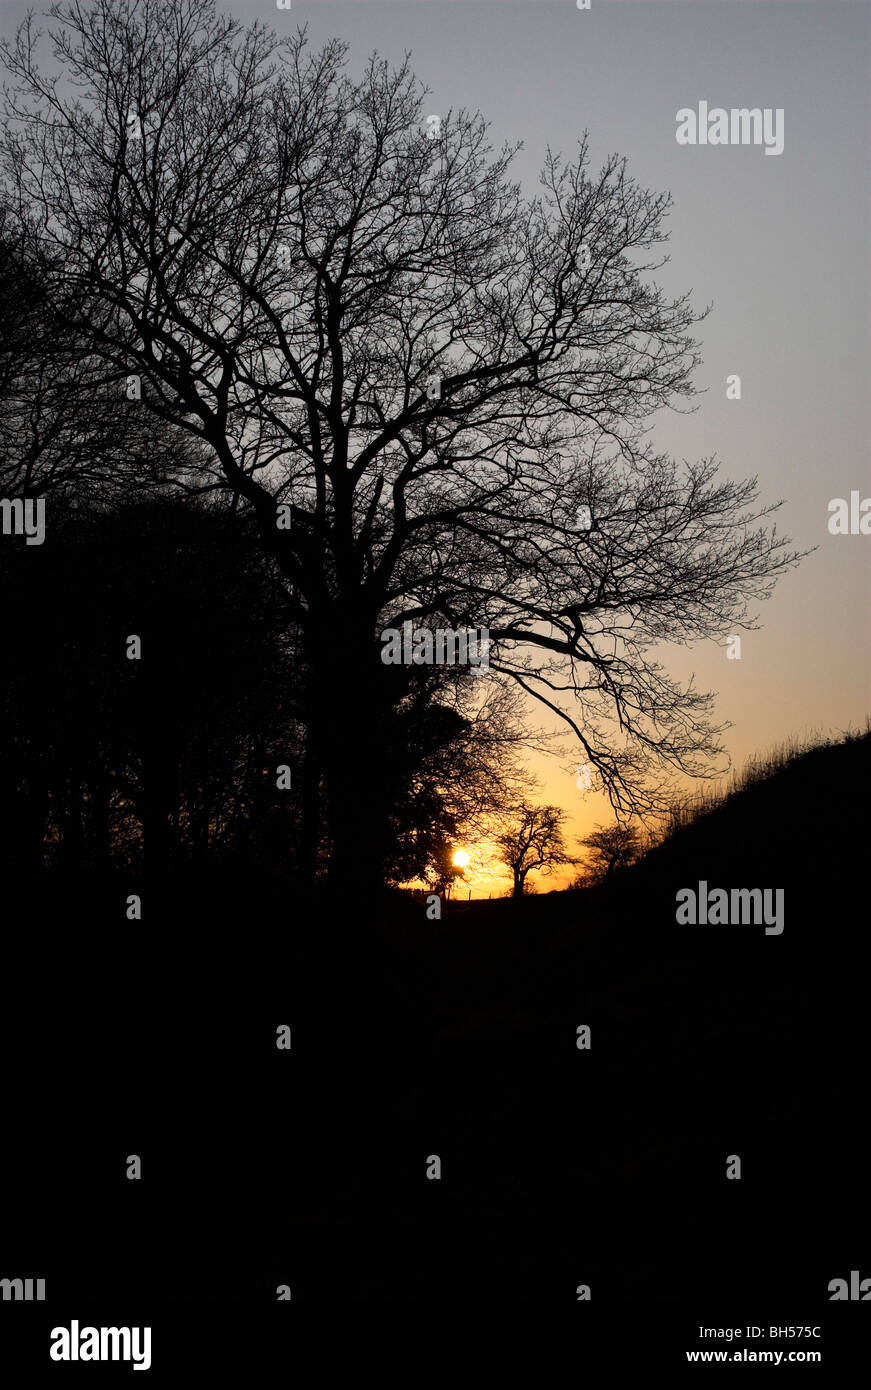 A scene from the South Downs National park at sunset. Stock Photo